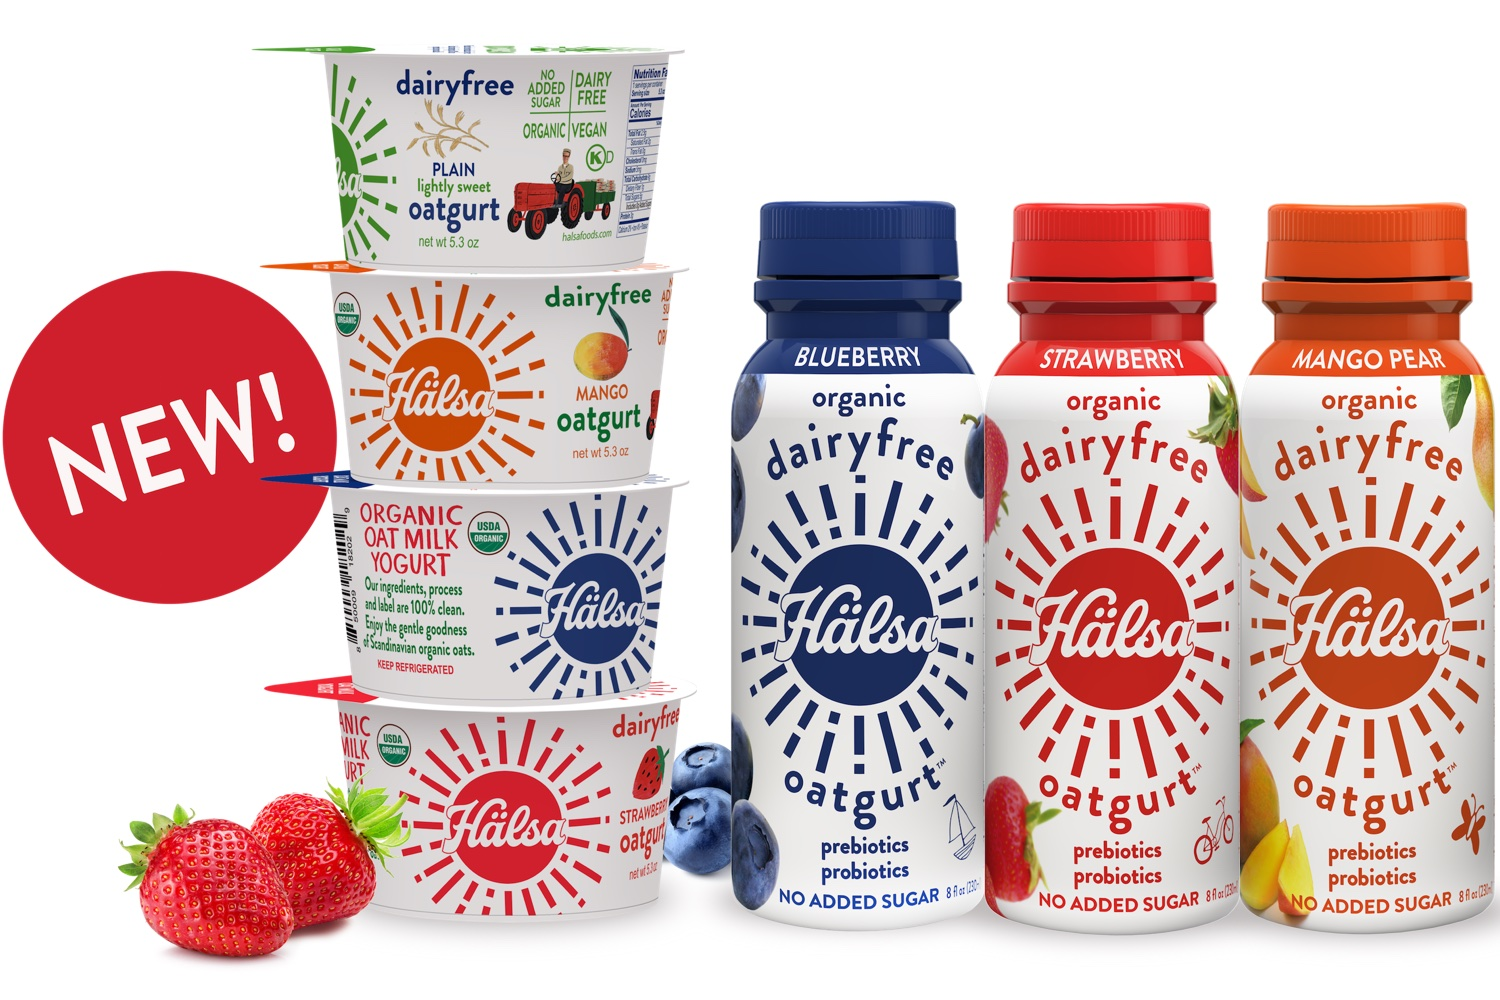 Hälsa Organic Oatmilk Yogurt Family - No Added Sugar, oat milk, oat yogurt, oatgurt, organic, halsa, 100% clean